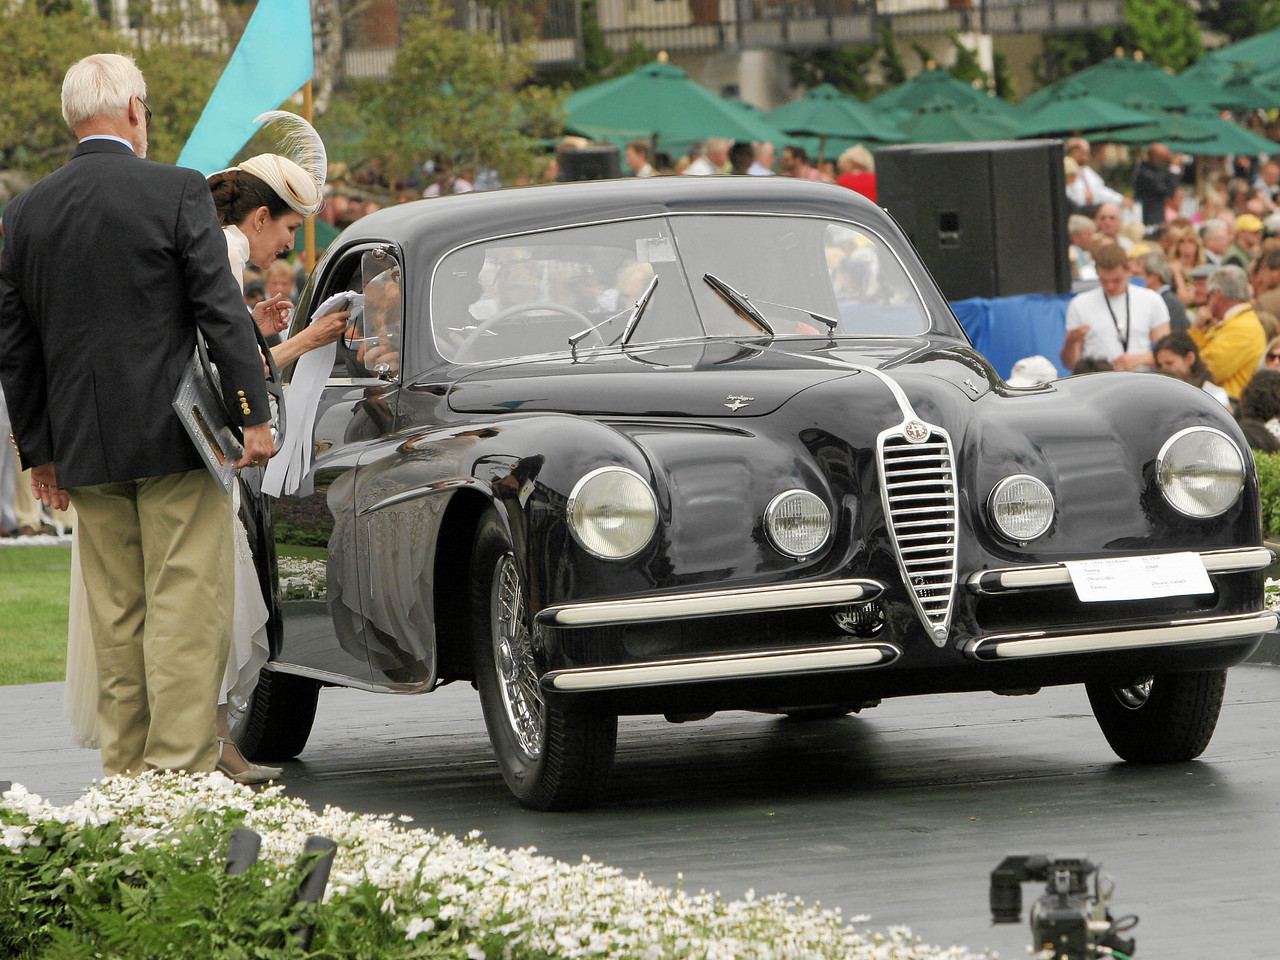 1948 Alfa Romeo 6C 2500 Touring Coupé owned by Oliver Collins from Toronto, Ontario 3rd  Class E-6  (Alfa Romeo 6C 2300 and 6C 2500)